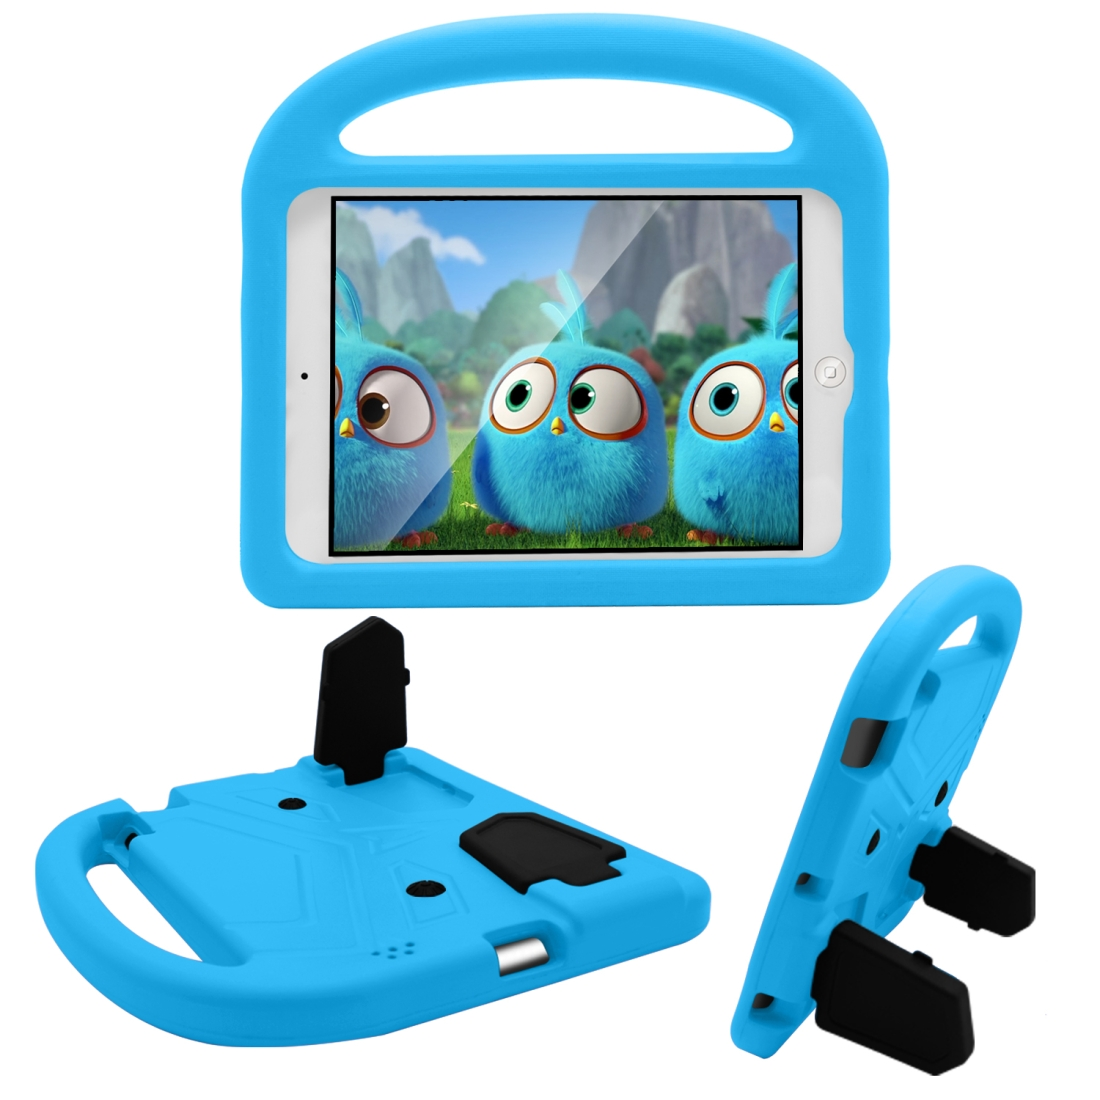 iPad Cover For Kids, Fits iPad 2/3/4 With A Kid Friendly Durable Shockproof EVA Design (Blue)